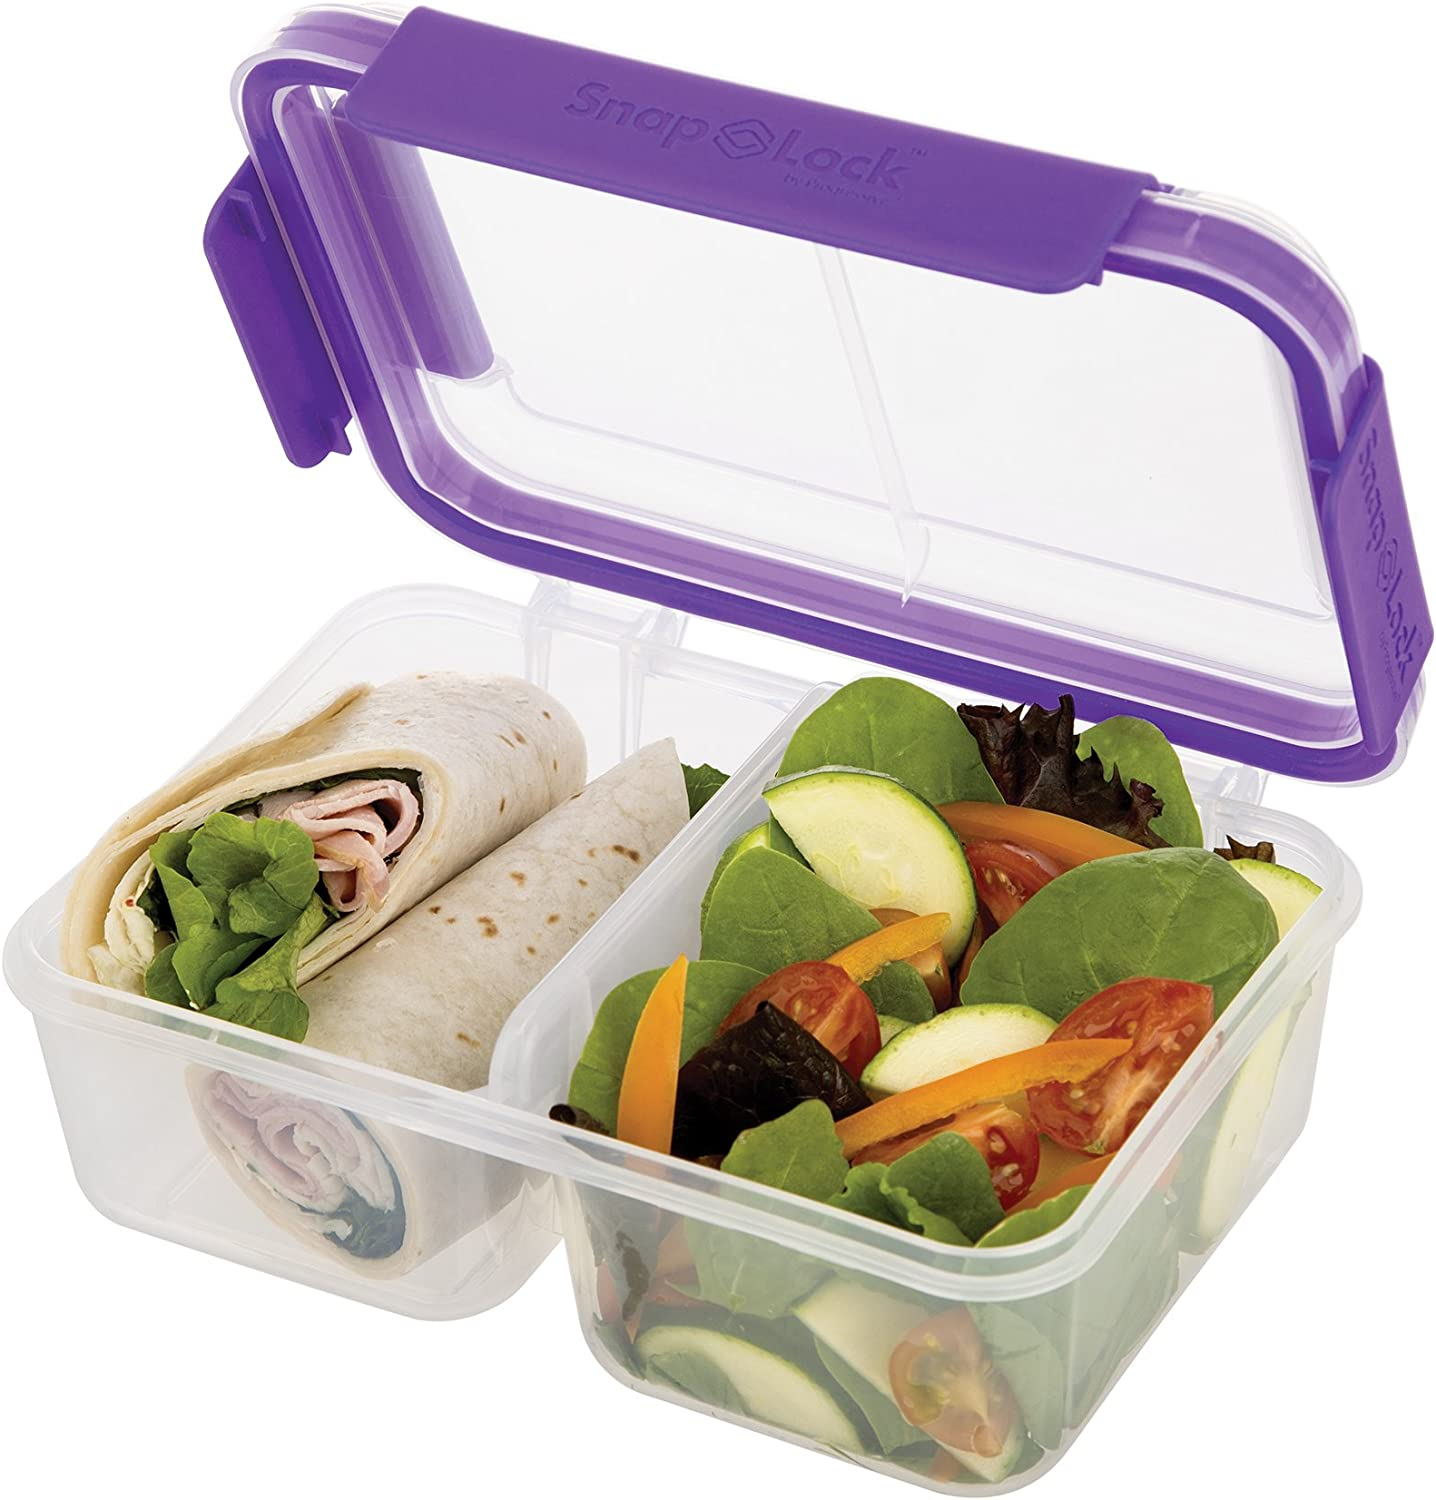 SnapLock by Progressive Deep Split Container - Purple, SNL-1018PEasy-To-Open, Leak-Proof Silicone Seal, Snap-Off Lid, Stackable, BPA FREE